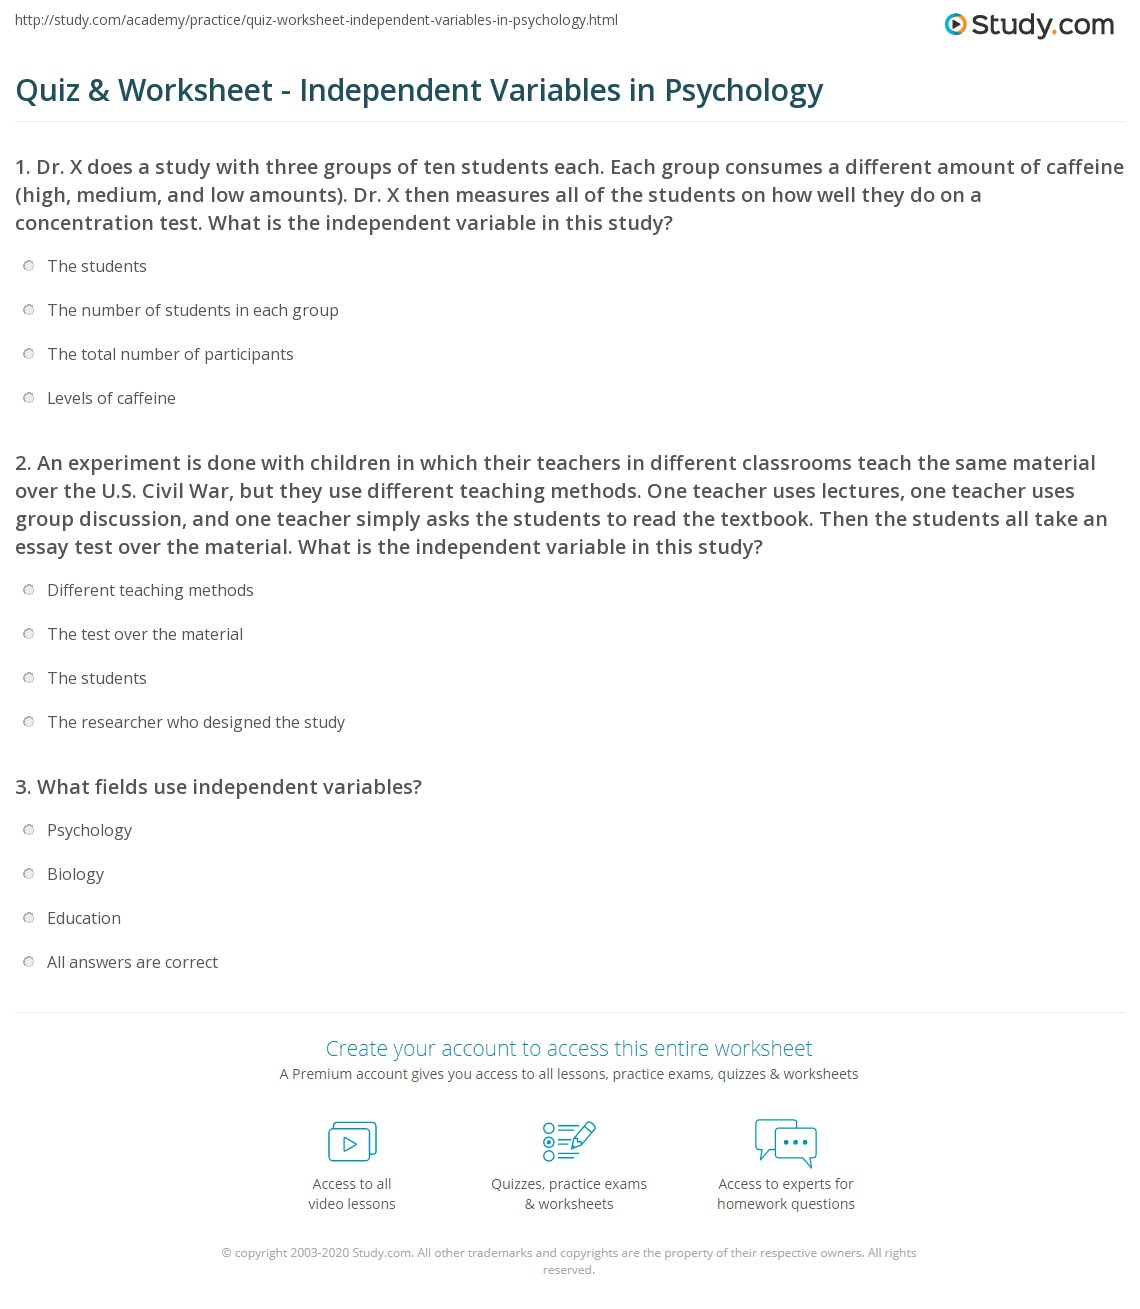 Worksheets Dependent And Independent Variables Worksheet quiz worksheet independent variables in psychology study com 1 an experiment is done with children which their teachers different classrooms teach the same material over u s civil w